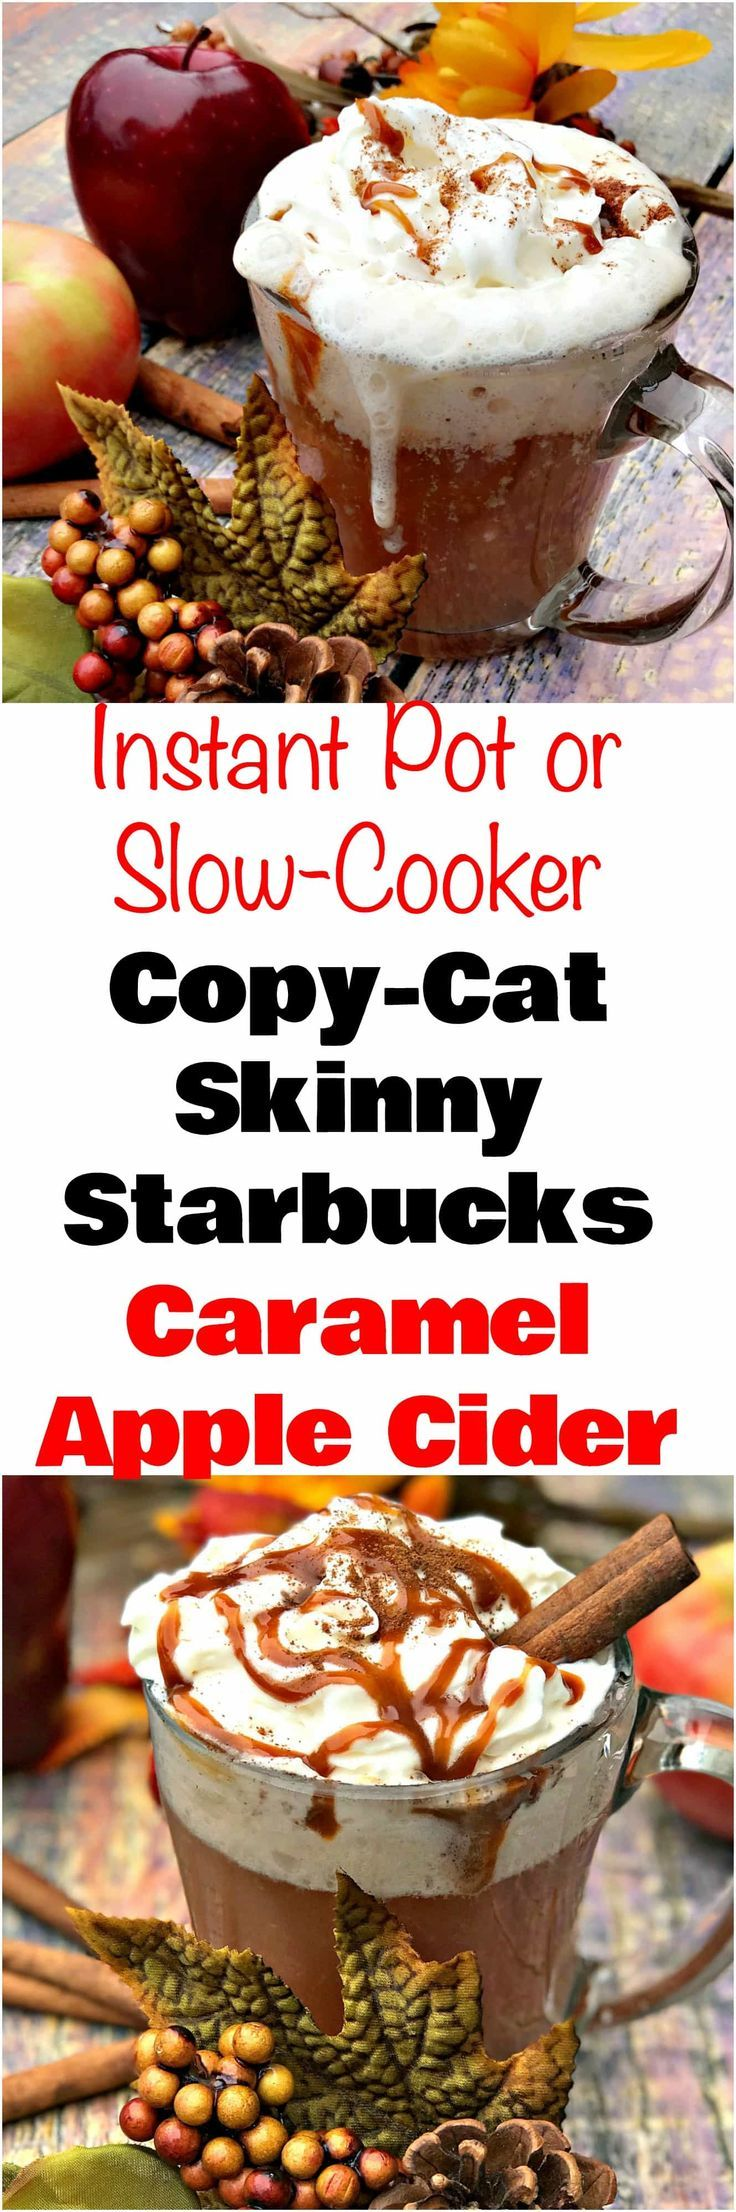 Instant Pot Slow-Cooker Skinny Copy-Cat Starbucks Apple Cider is a quick and easy crockpot and pressure cooker recipe that is low-calorie with cinnamon. #InstantPot #PressureCooker #InstantPotRecipes #PressureCookerRecipes #HolidayDrinks #AppleCider #HolidayRecipes #ThanksgivingDrinks #ChristmasDrinks #ThanksgivingRecipes